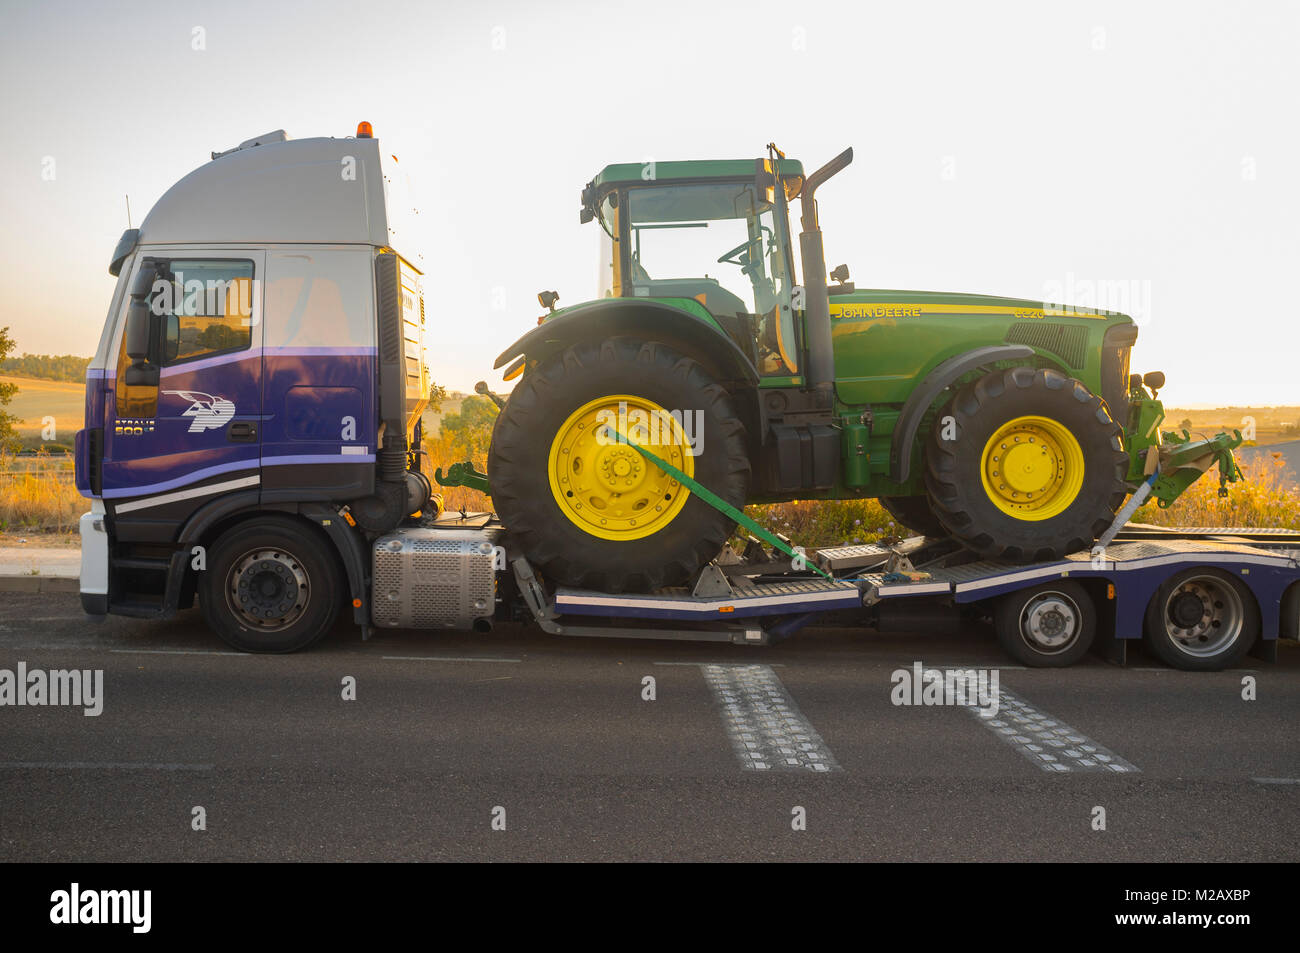 Badajoz, Spain - August 6th, 2017: Auto-transport trailer carrying the Row Crop Tractor John Deere 8320 - Stock Image